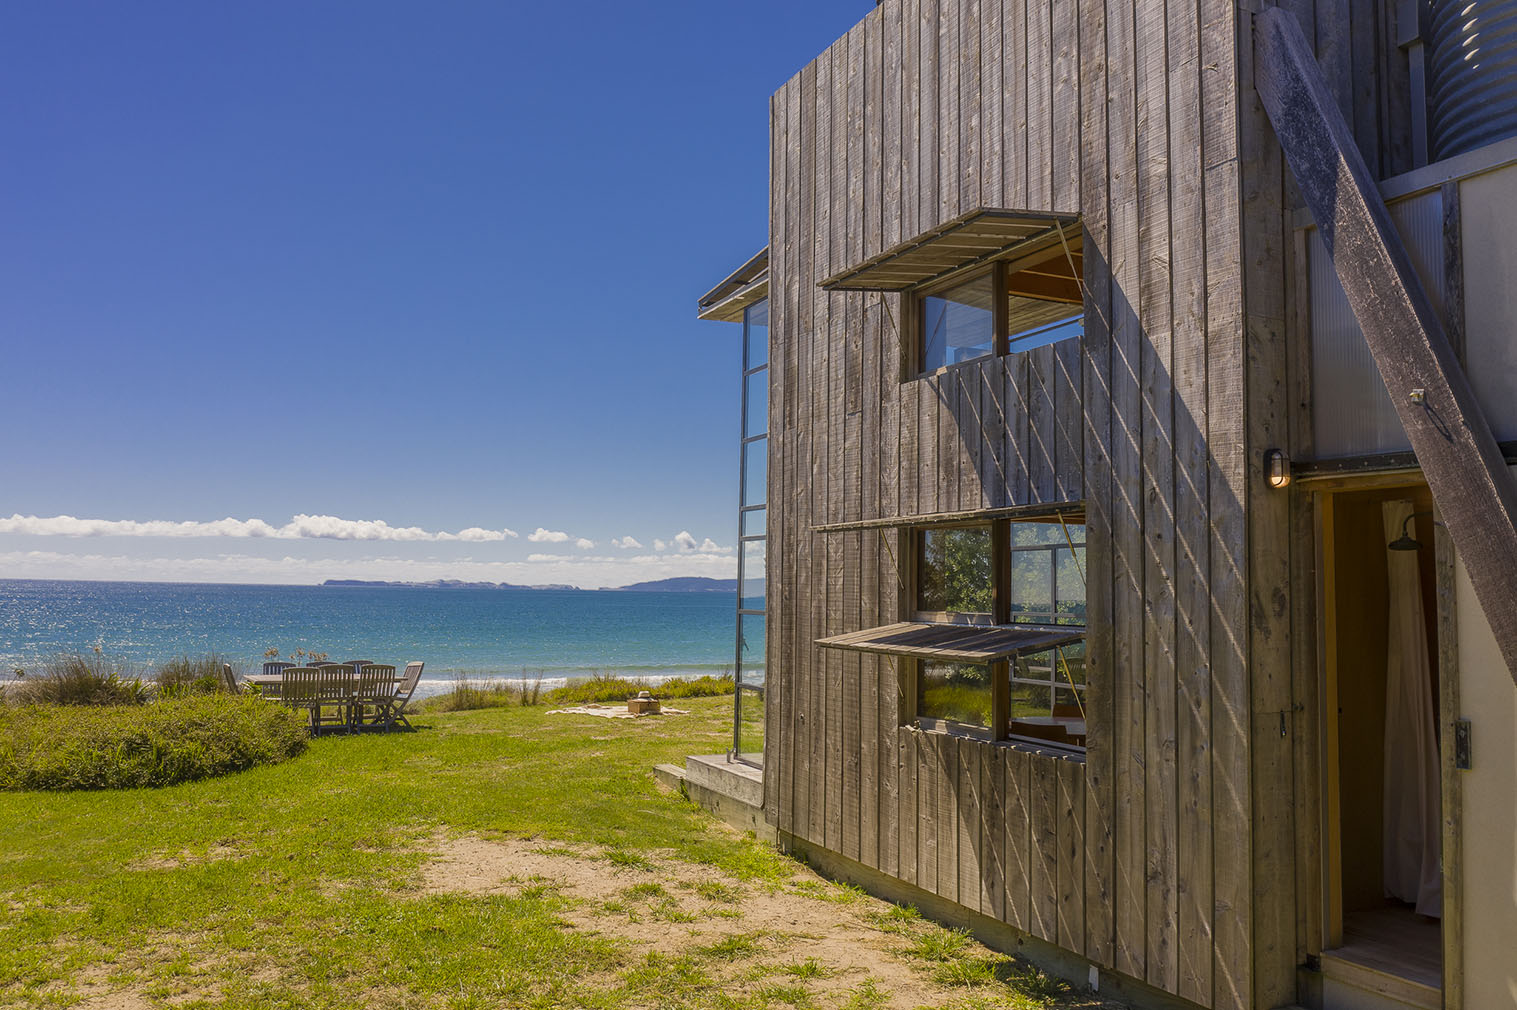 This award-winning New Zealand coastal cabin has been built on wooden runners, limiting impact on its natural environment while enabling it to be easily towed away